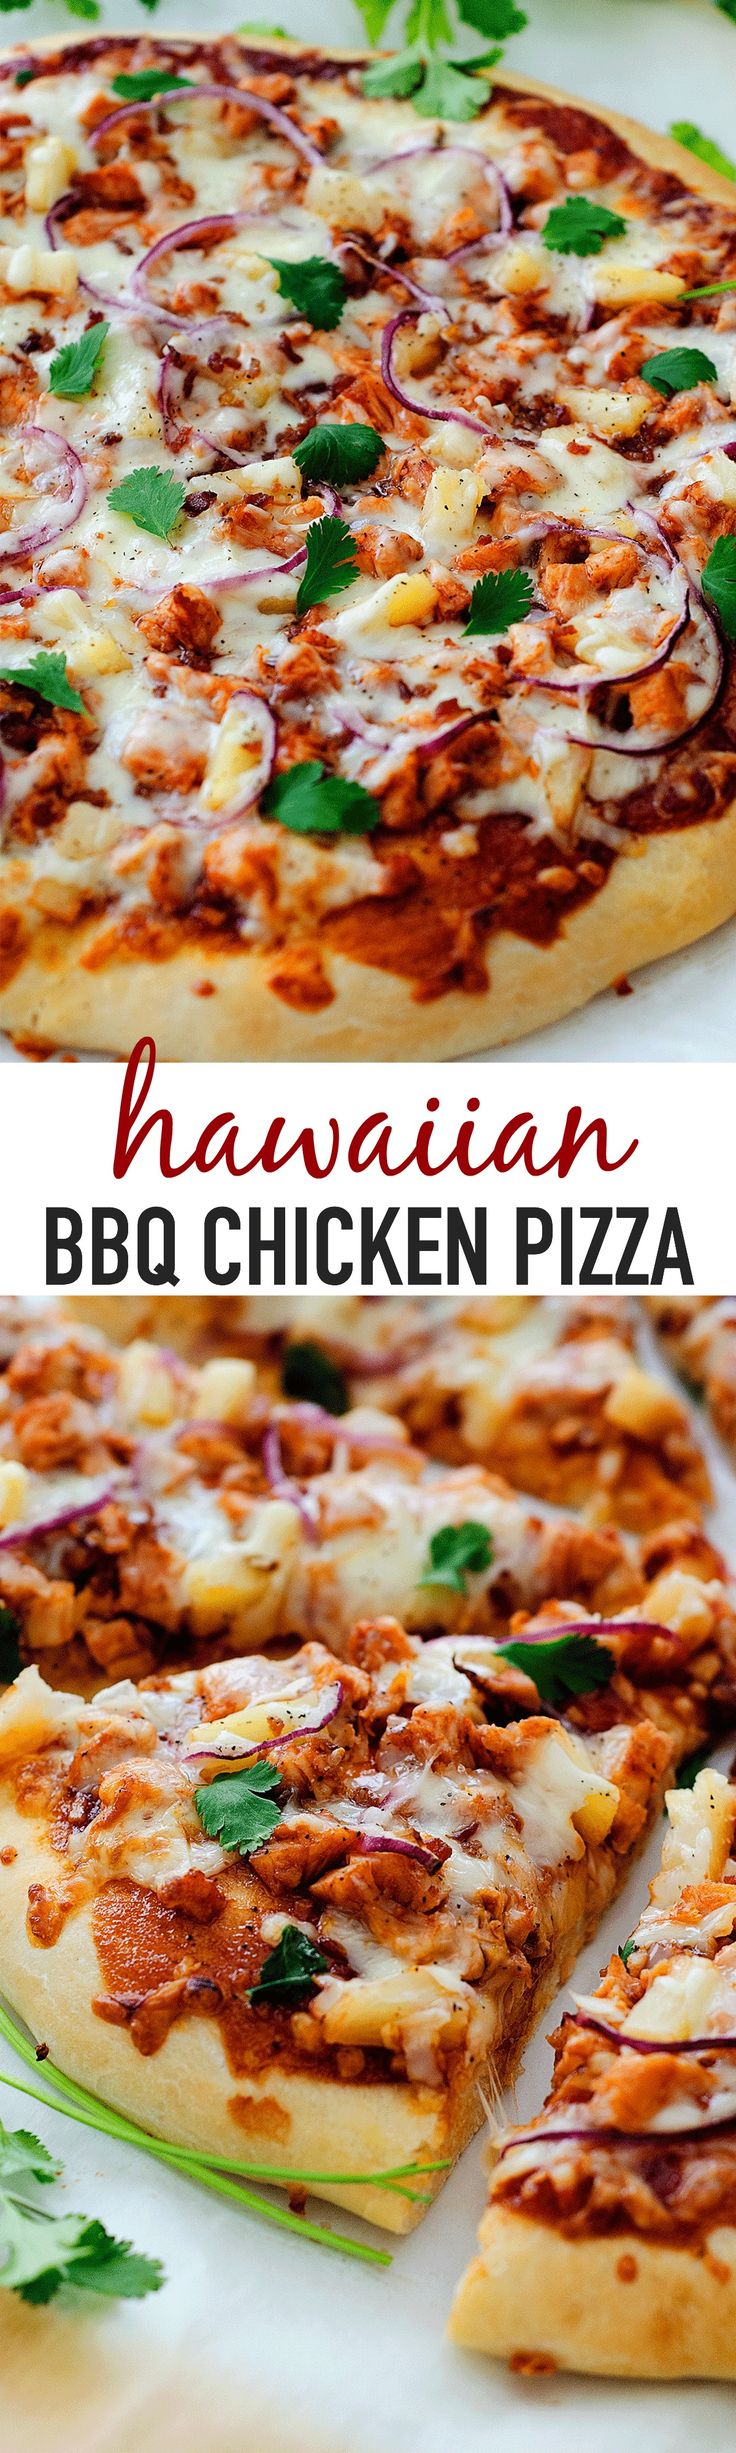 This Hawaiian BBQ Chicken Pizza is my family's favorite! I use our tried and true HOMEMADE PIZZA DOUGH and pile on all the toppings. Barbecue sauce, chicken, mozzarella cheese and a few more goodies that make this pie outstanding. We have a pizza night almost once a week at our house. Usually on Friday... Read More »